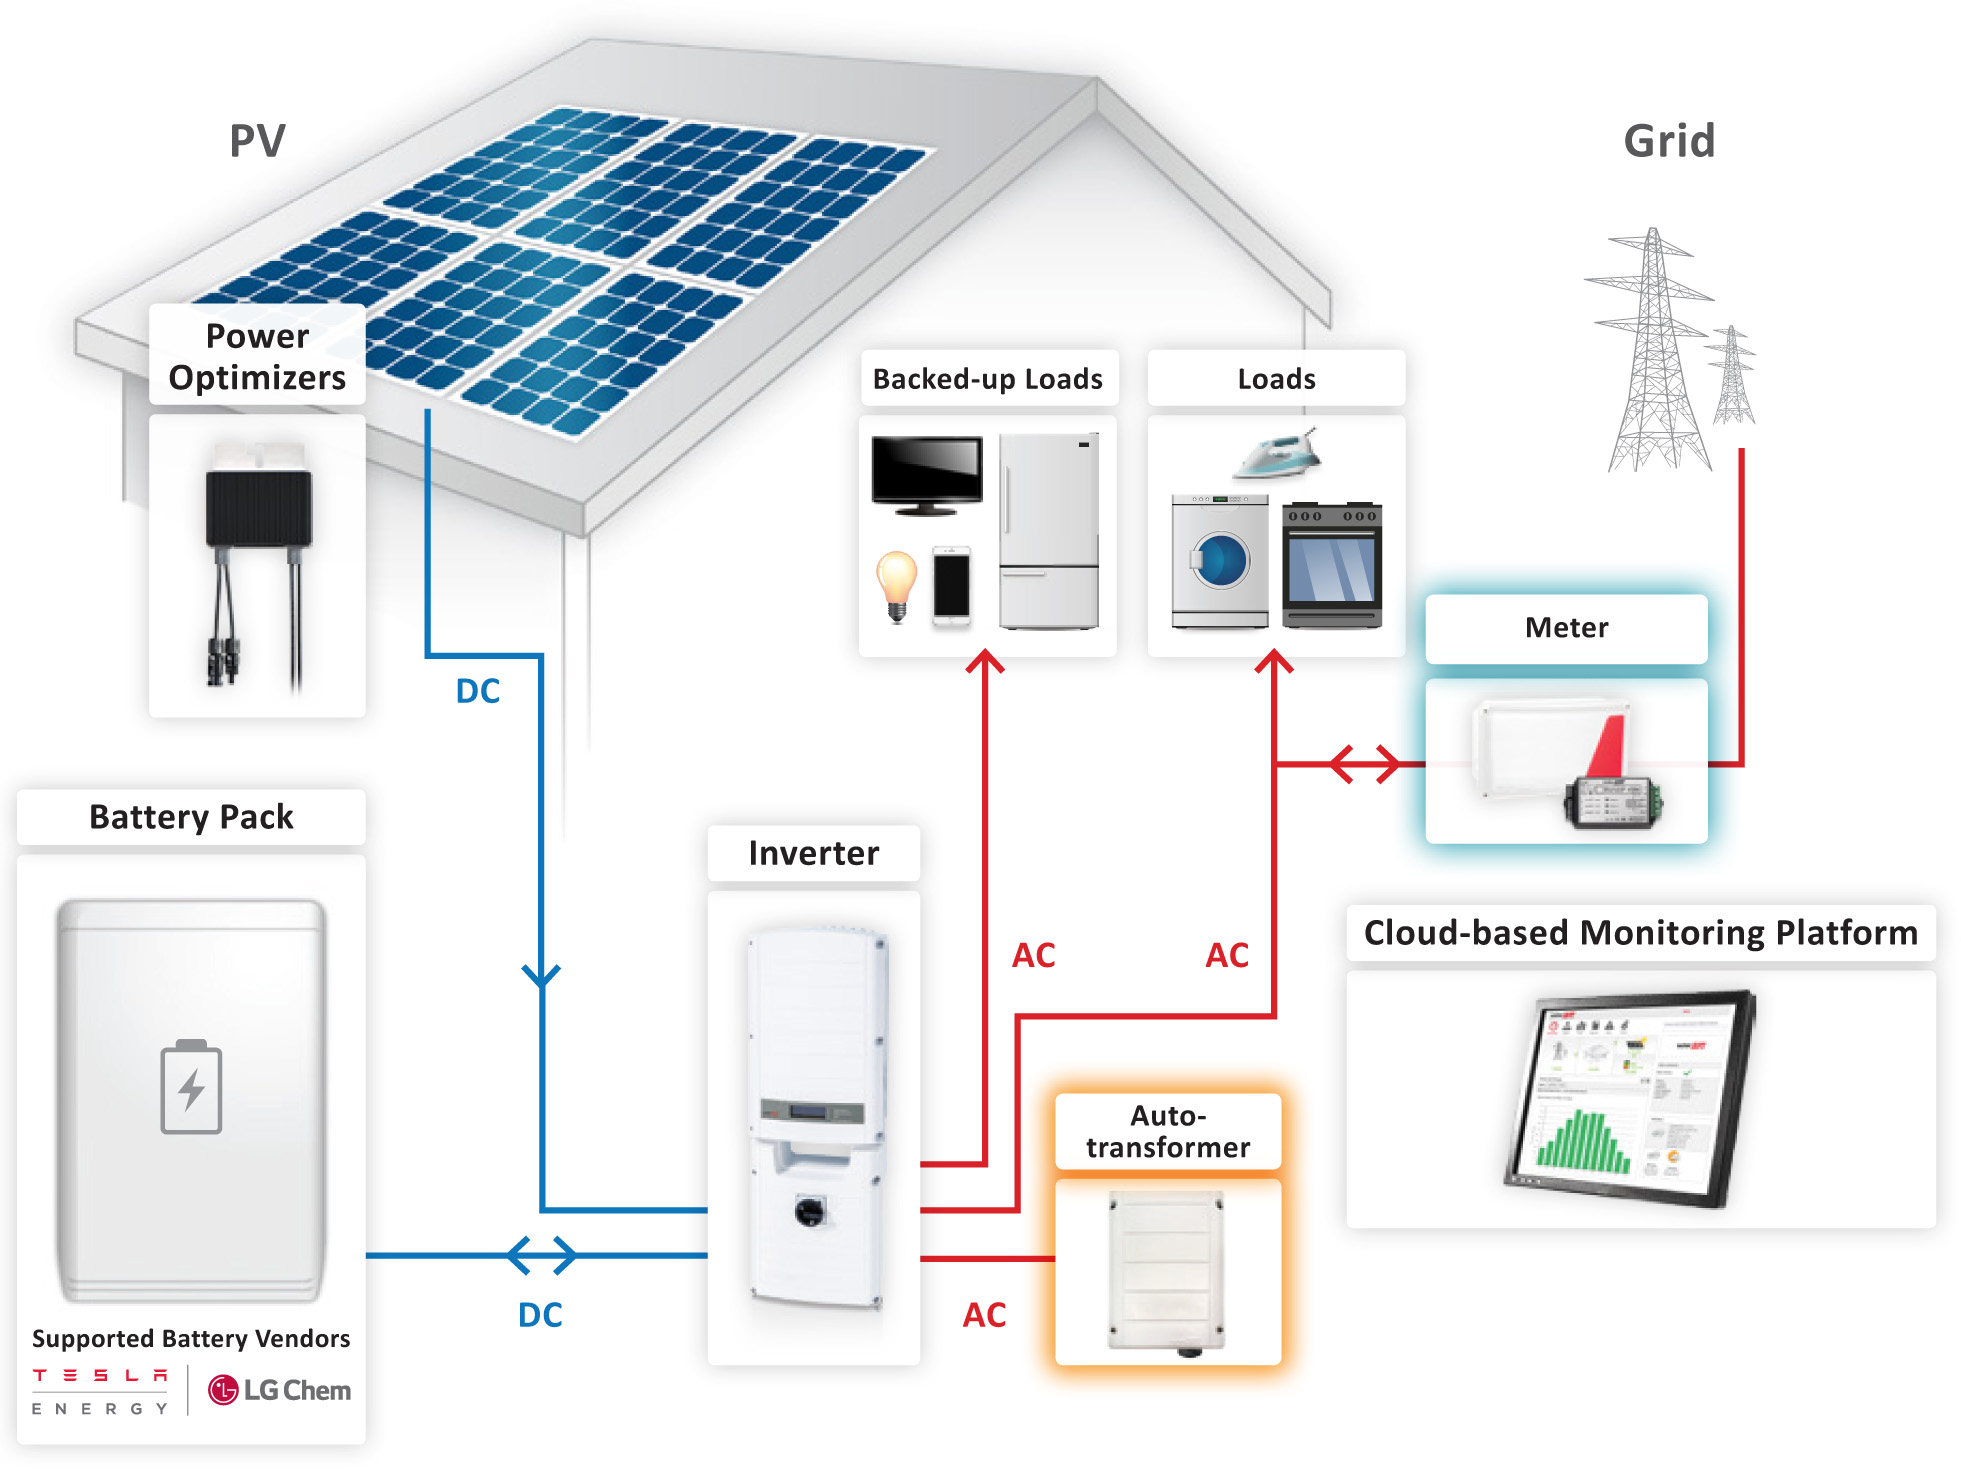 Solar Pv Systems Backup Power Ups Systems: SolarEdge StorEdge 7.6kW Inverter Battery Backup